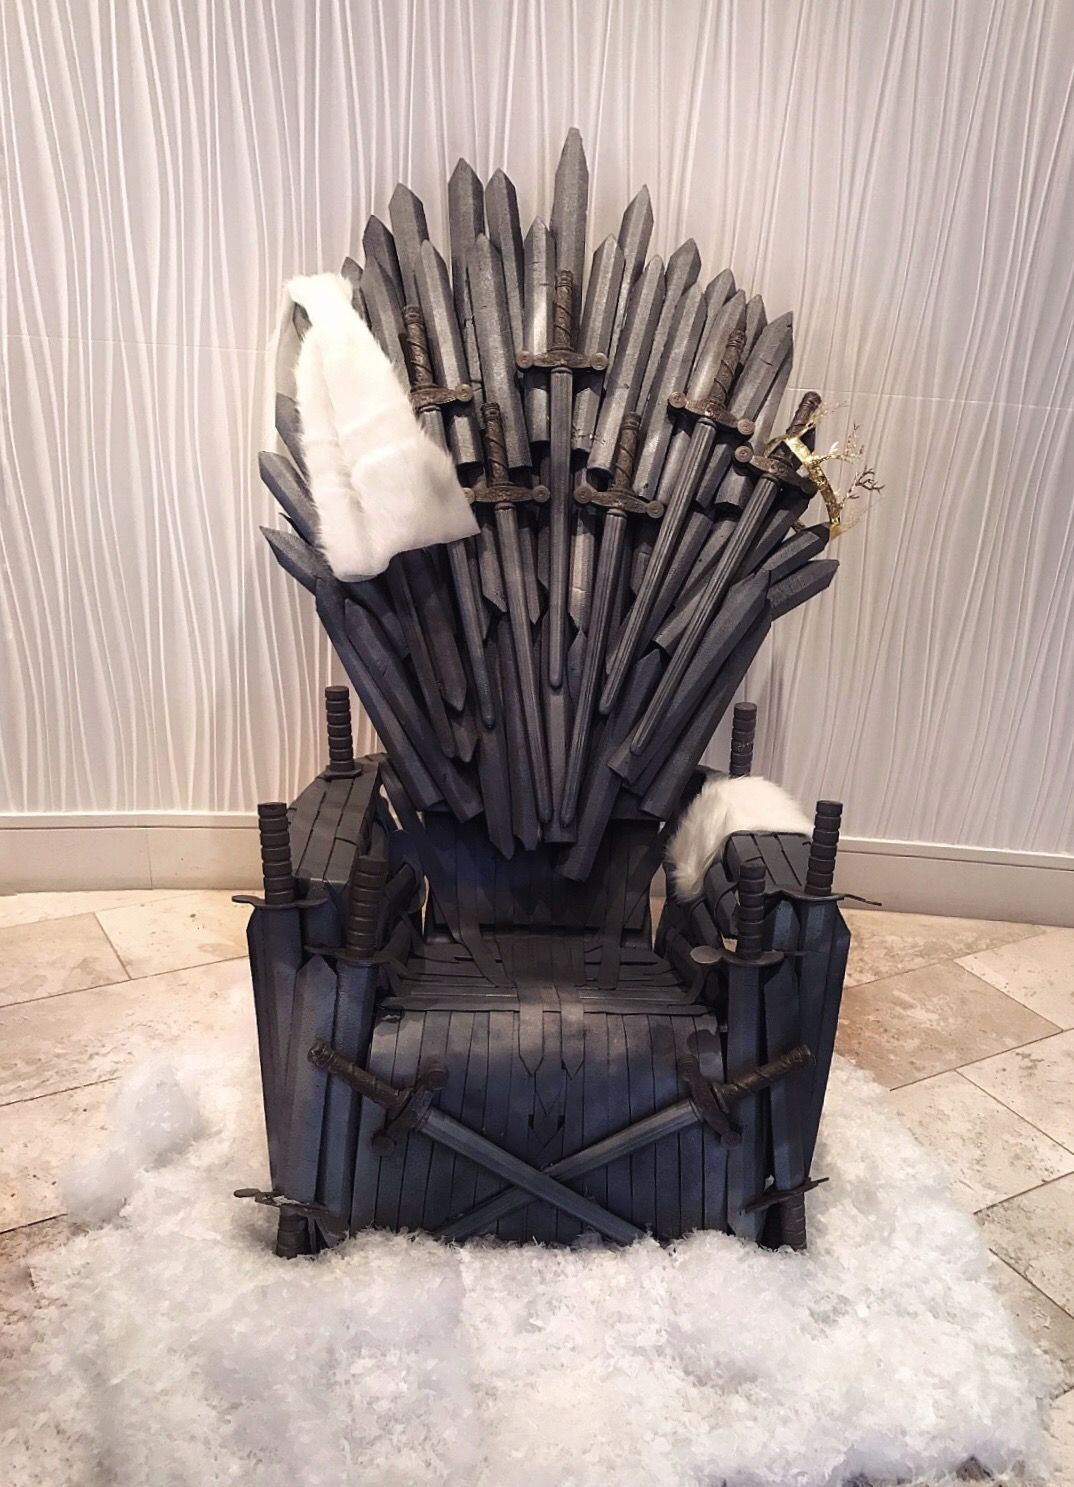 game of throne chair pads for rocking chairs games baby shower iron diy